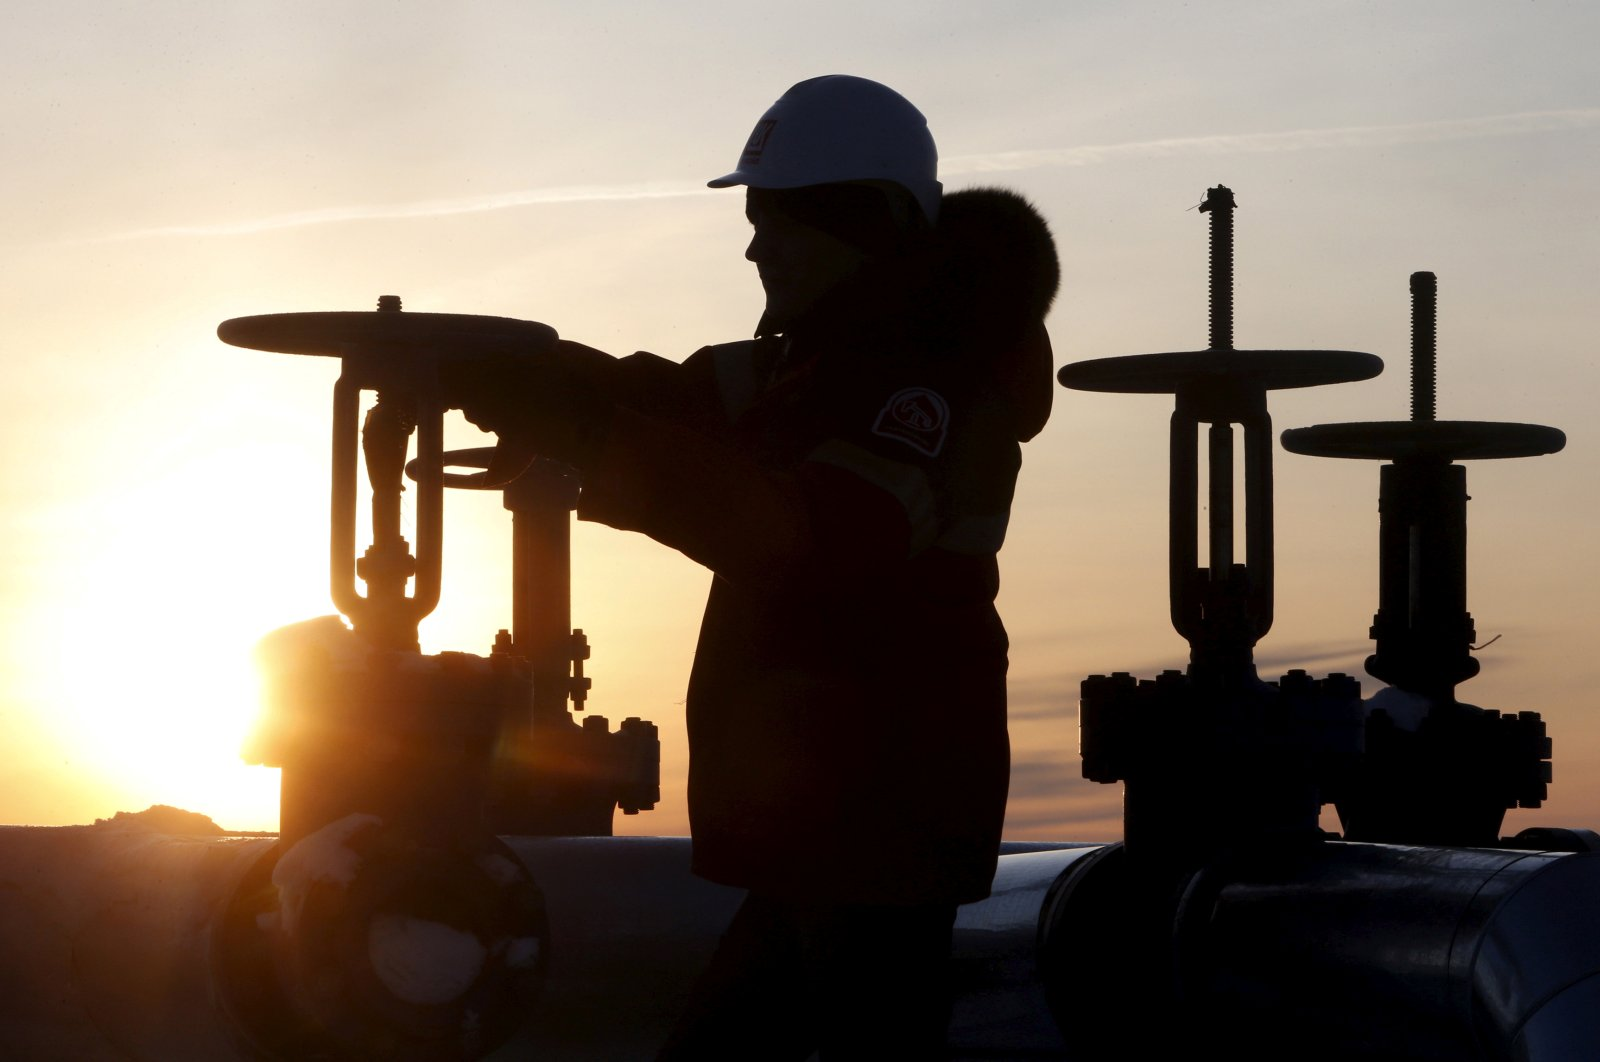 A worker checks the valve of an oil pipe at the Lukoil company owned Imilorskoye oil field outside the West Siberian city of Kogalym, Russia, January 25, 2016. (REUTERS Photo)